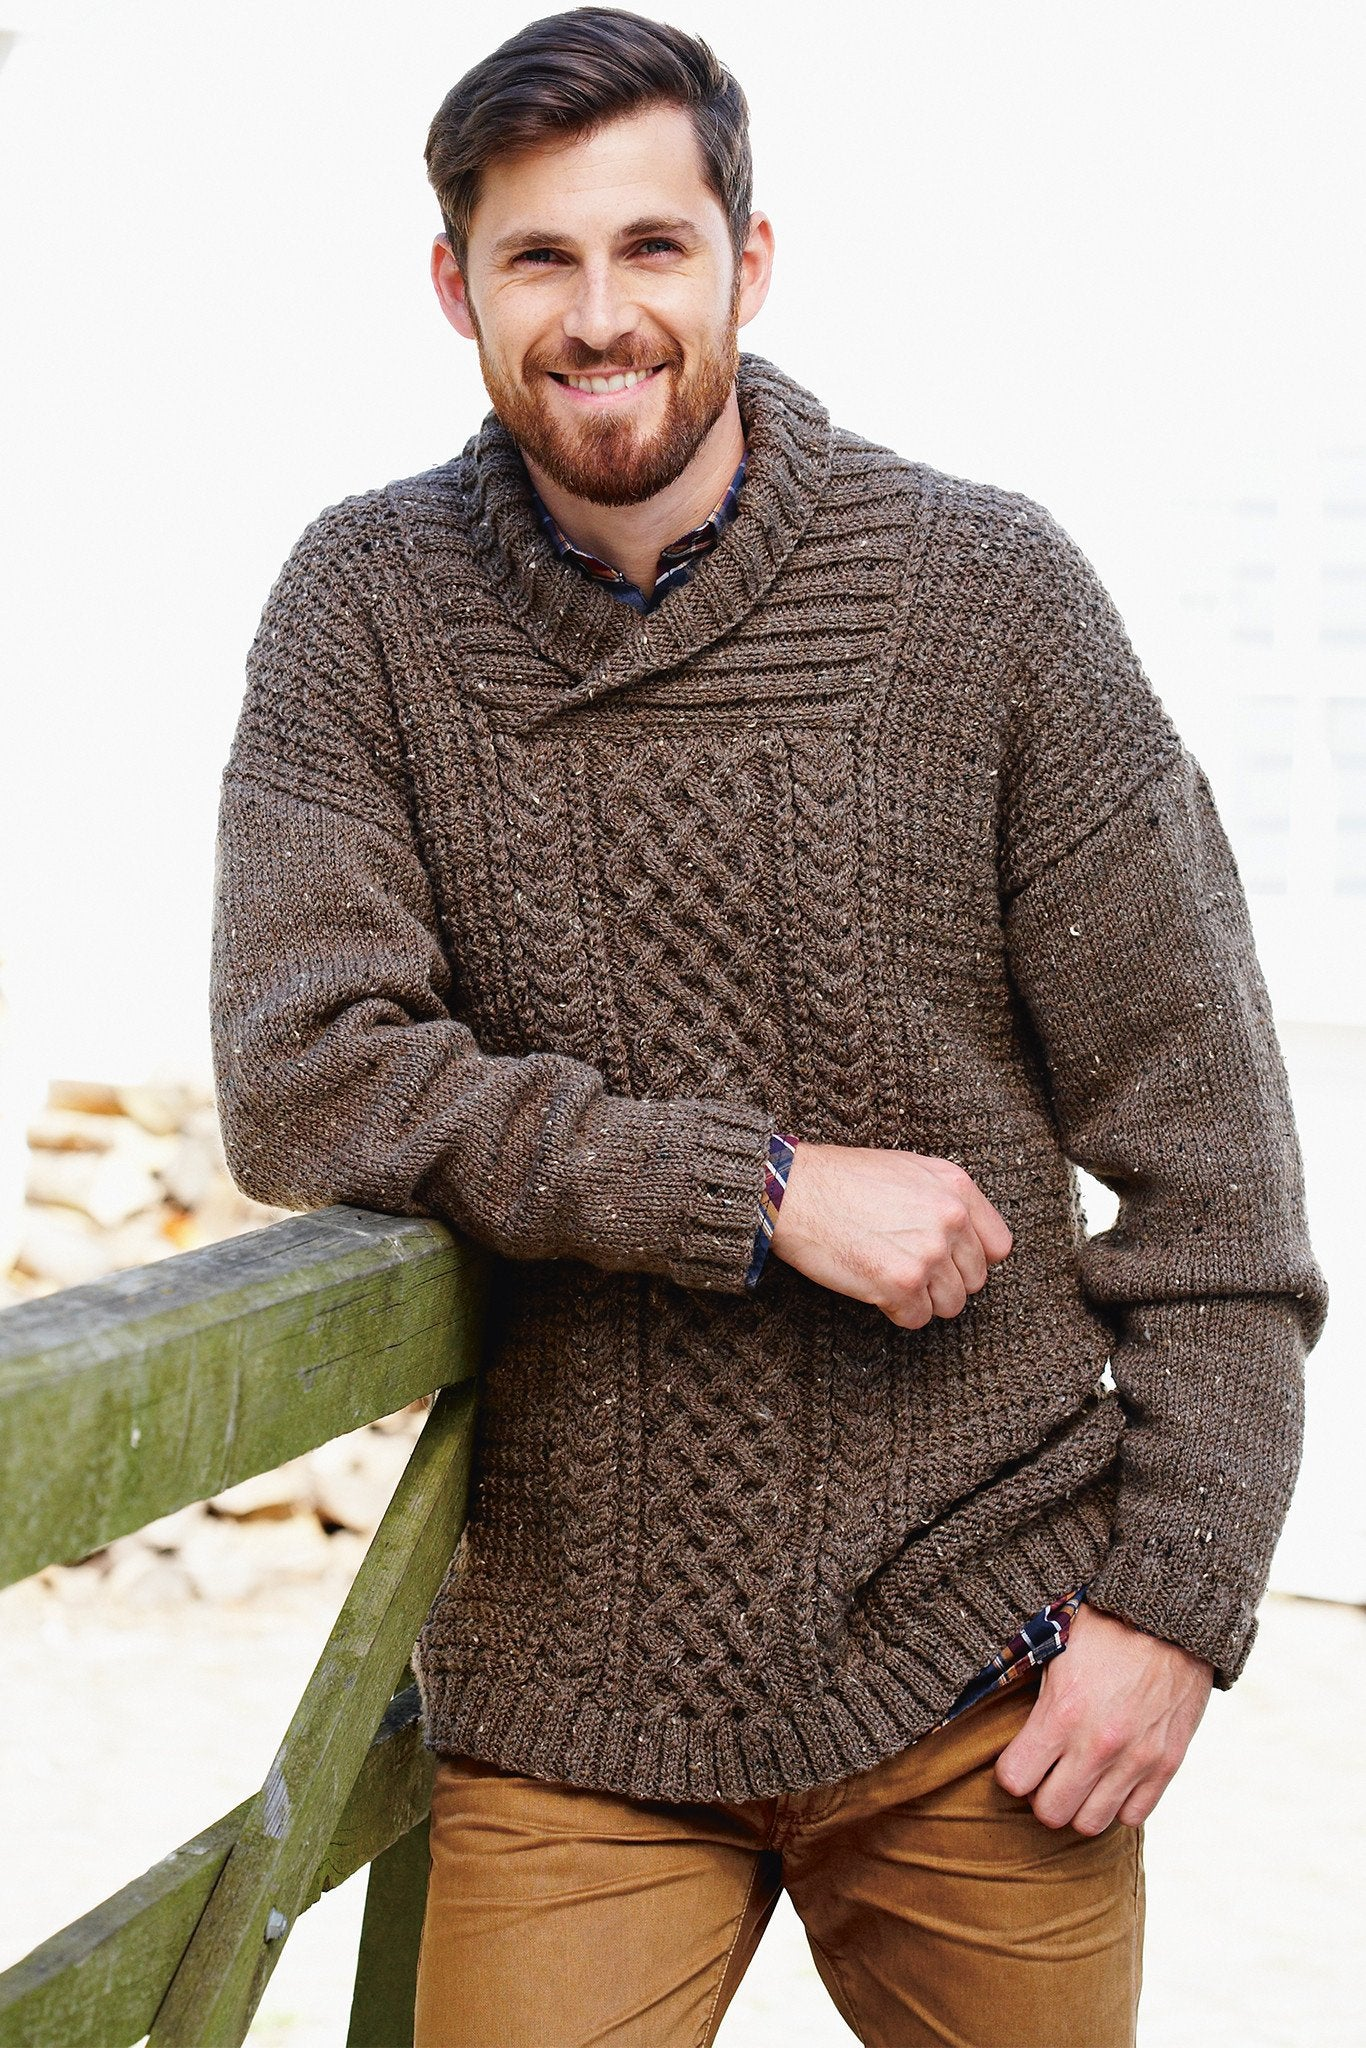 Mens aran sweater knitting pattern the knitting network mens aran sweater knitting pattern bankloansurffo Gallery